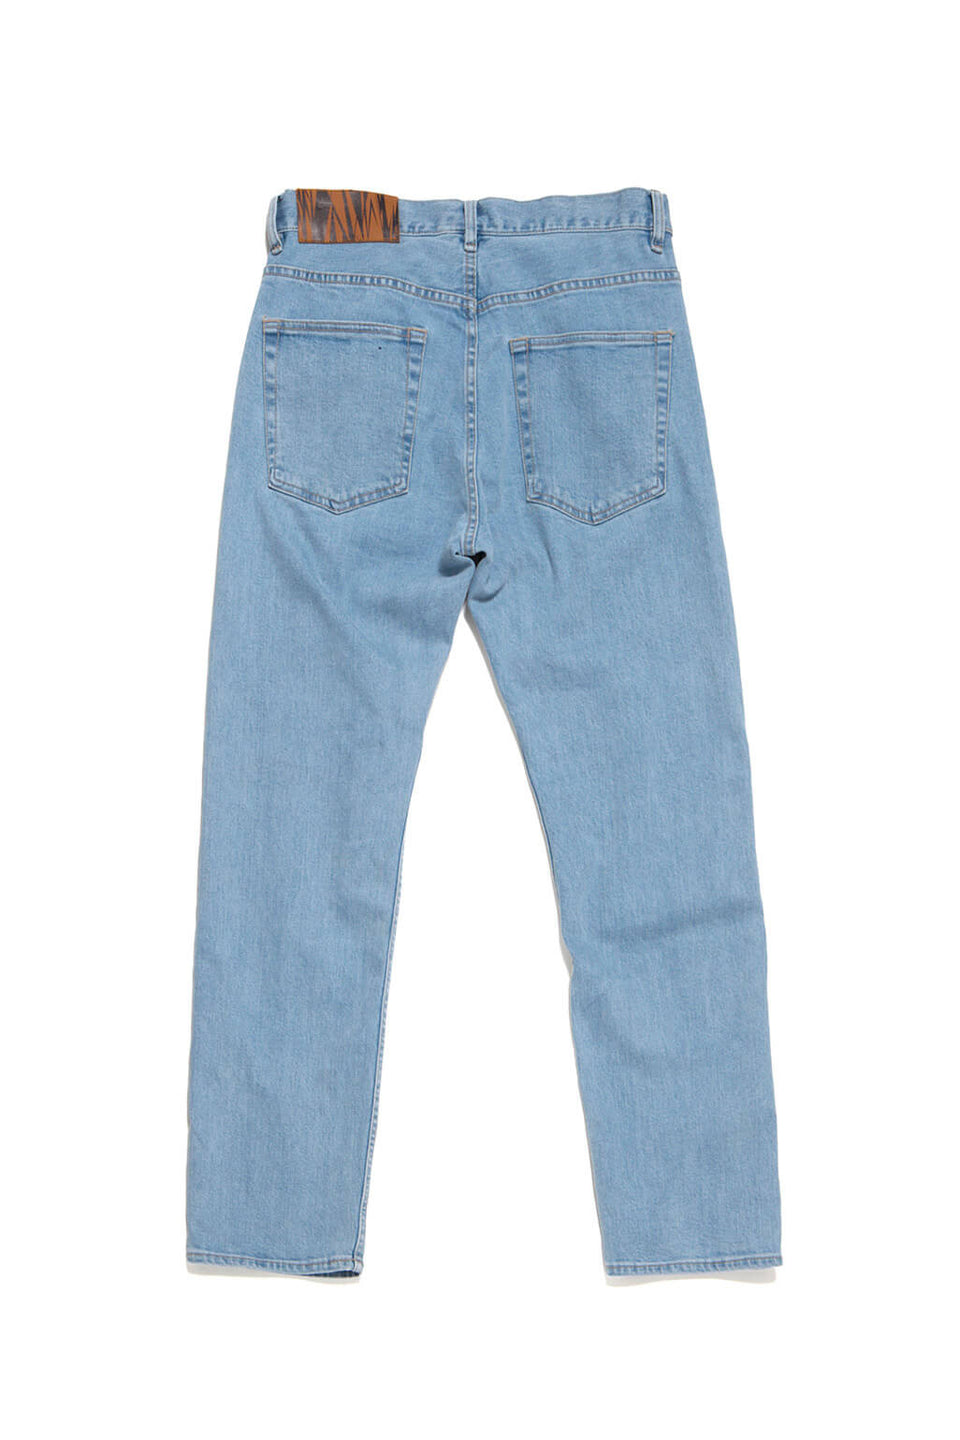 Light Washed Denim (Relaxed)